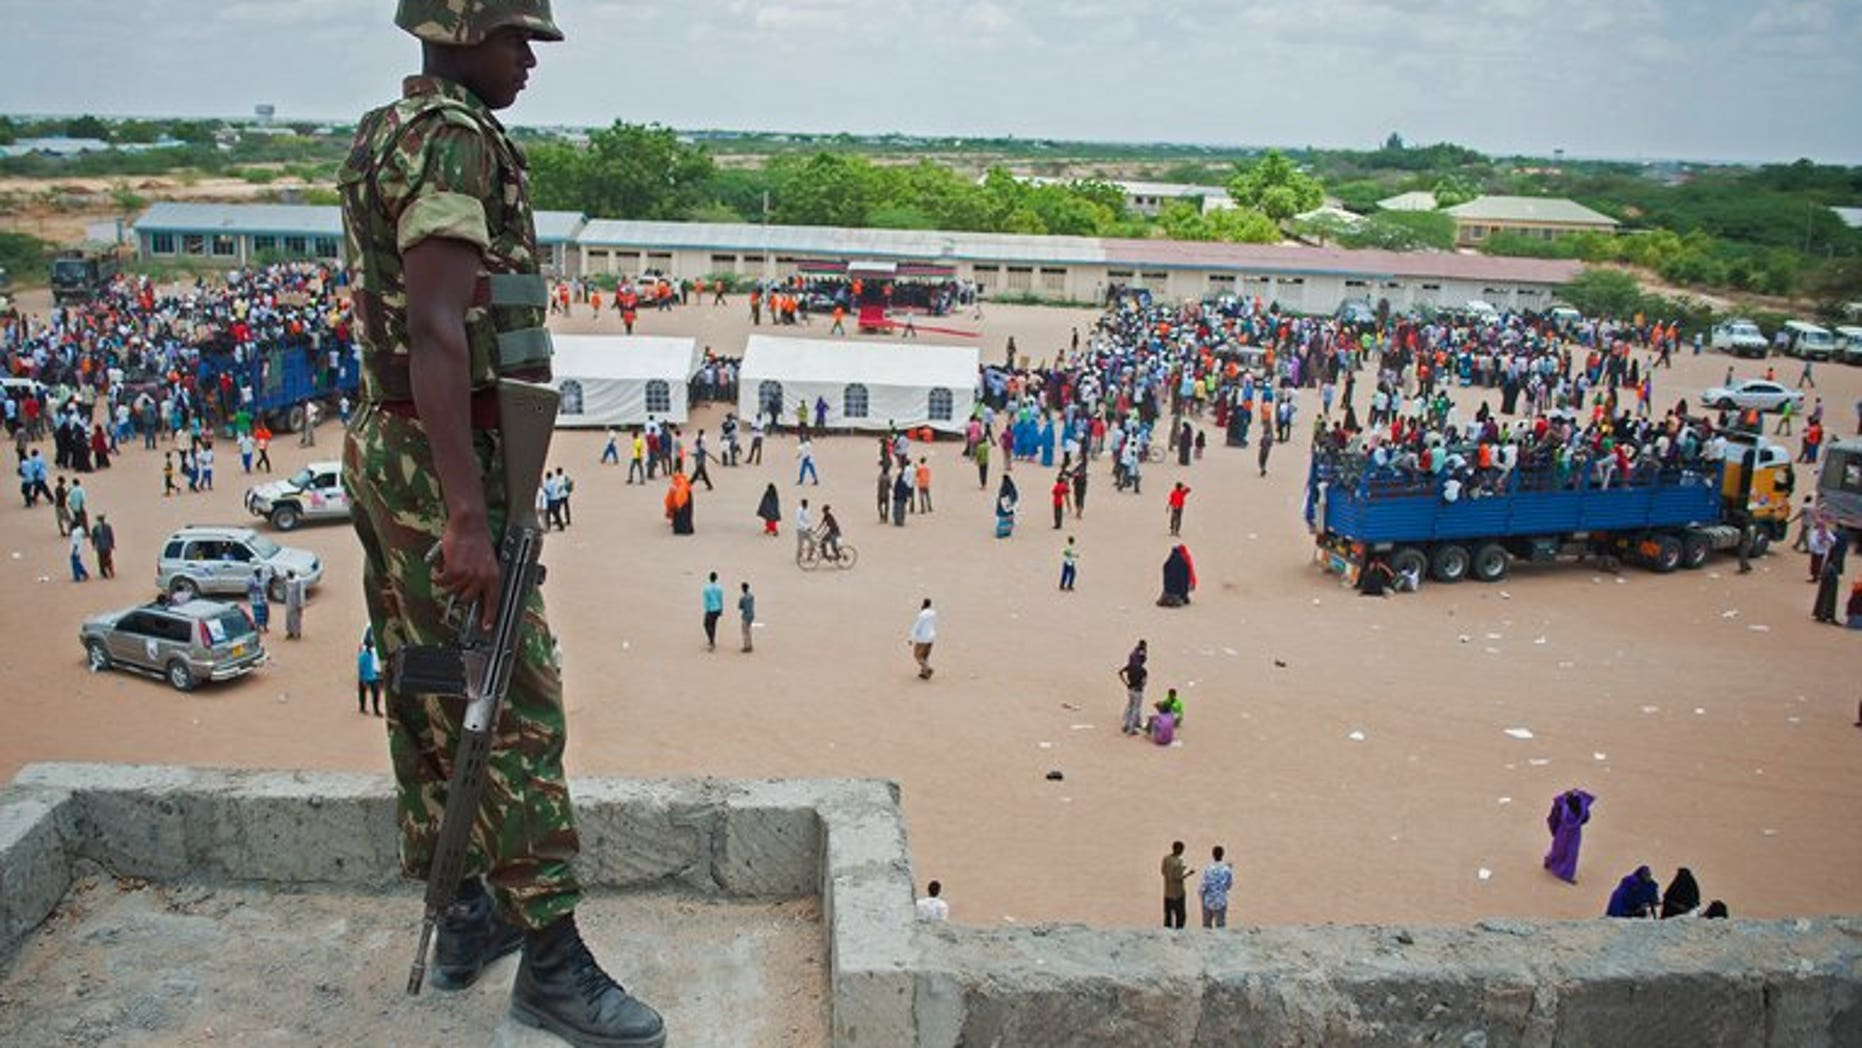 A Kenyan soldiers watches a political rally in Garissa on February 27. An attack blamed on Somali Islamist insurgents left four people dead in eastern Kenya and prompted hundreds to flee into the bush, authorities and the Red Cross said Saturday.